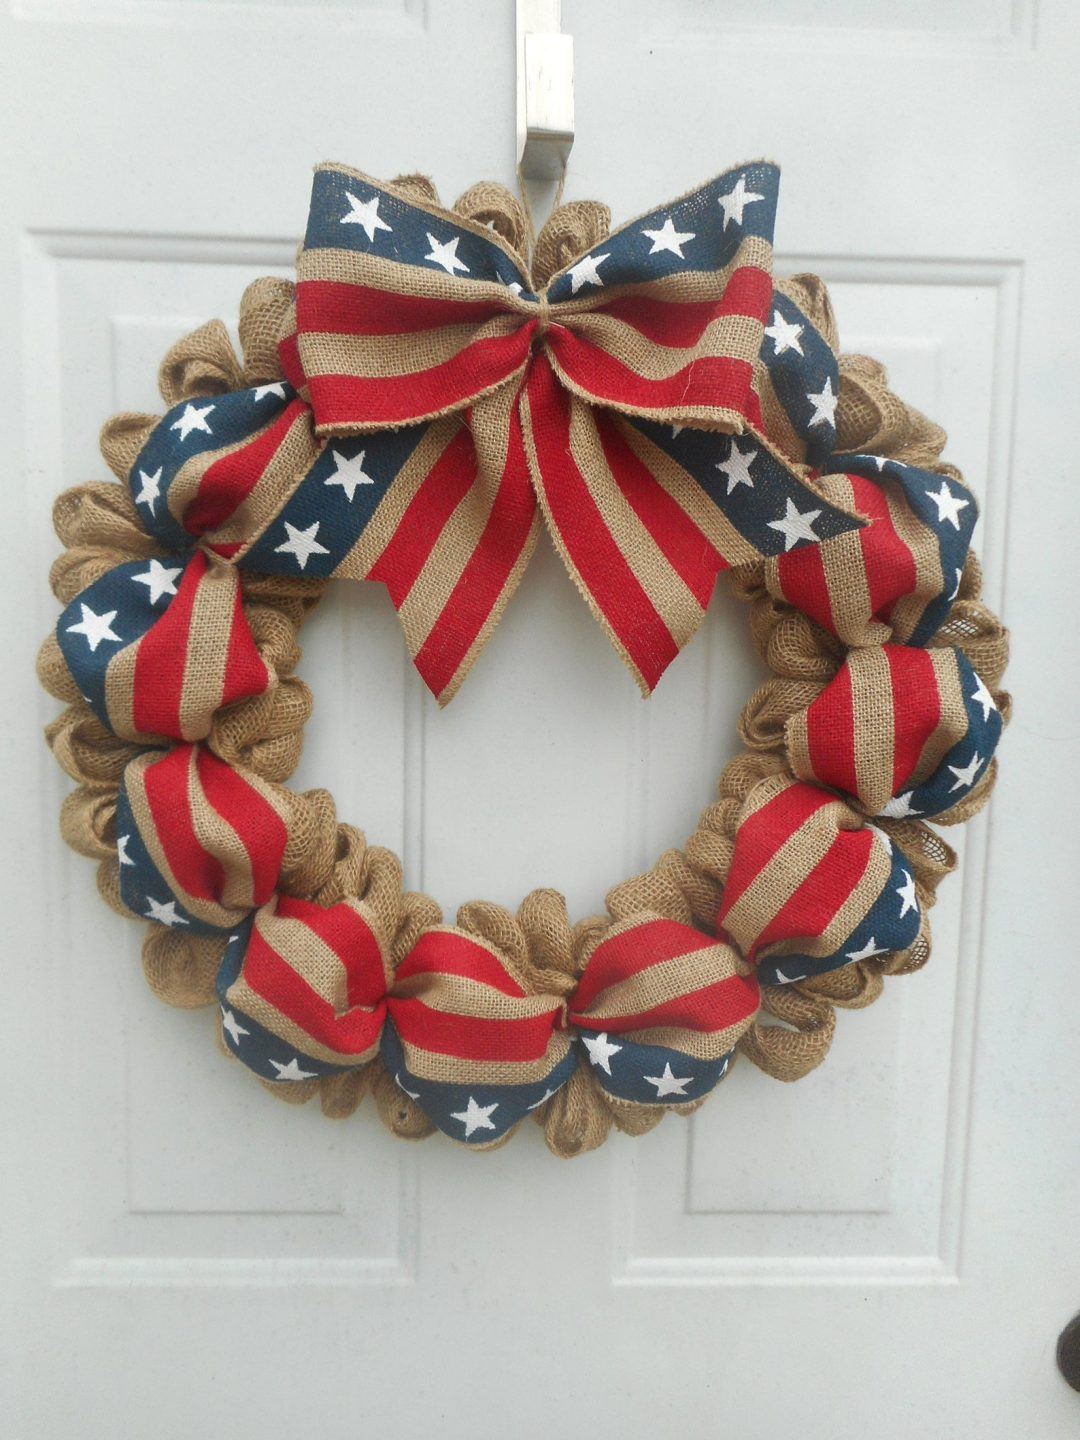 The best burlap 4th of July wreaths and burlap patriotic wreaths